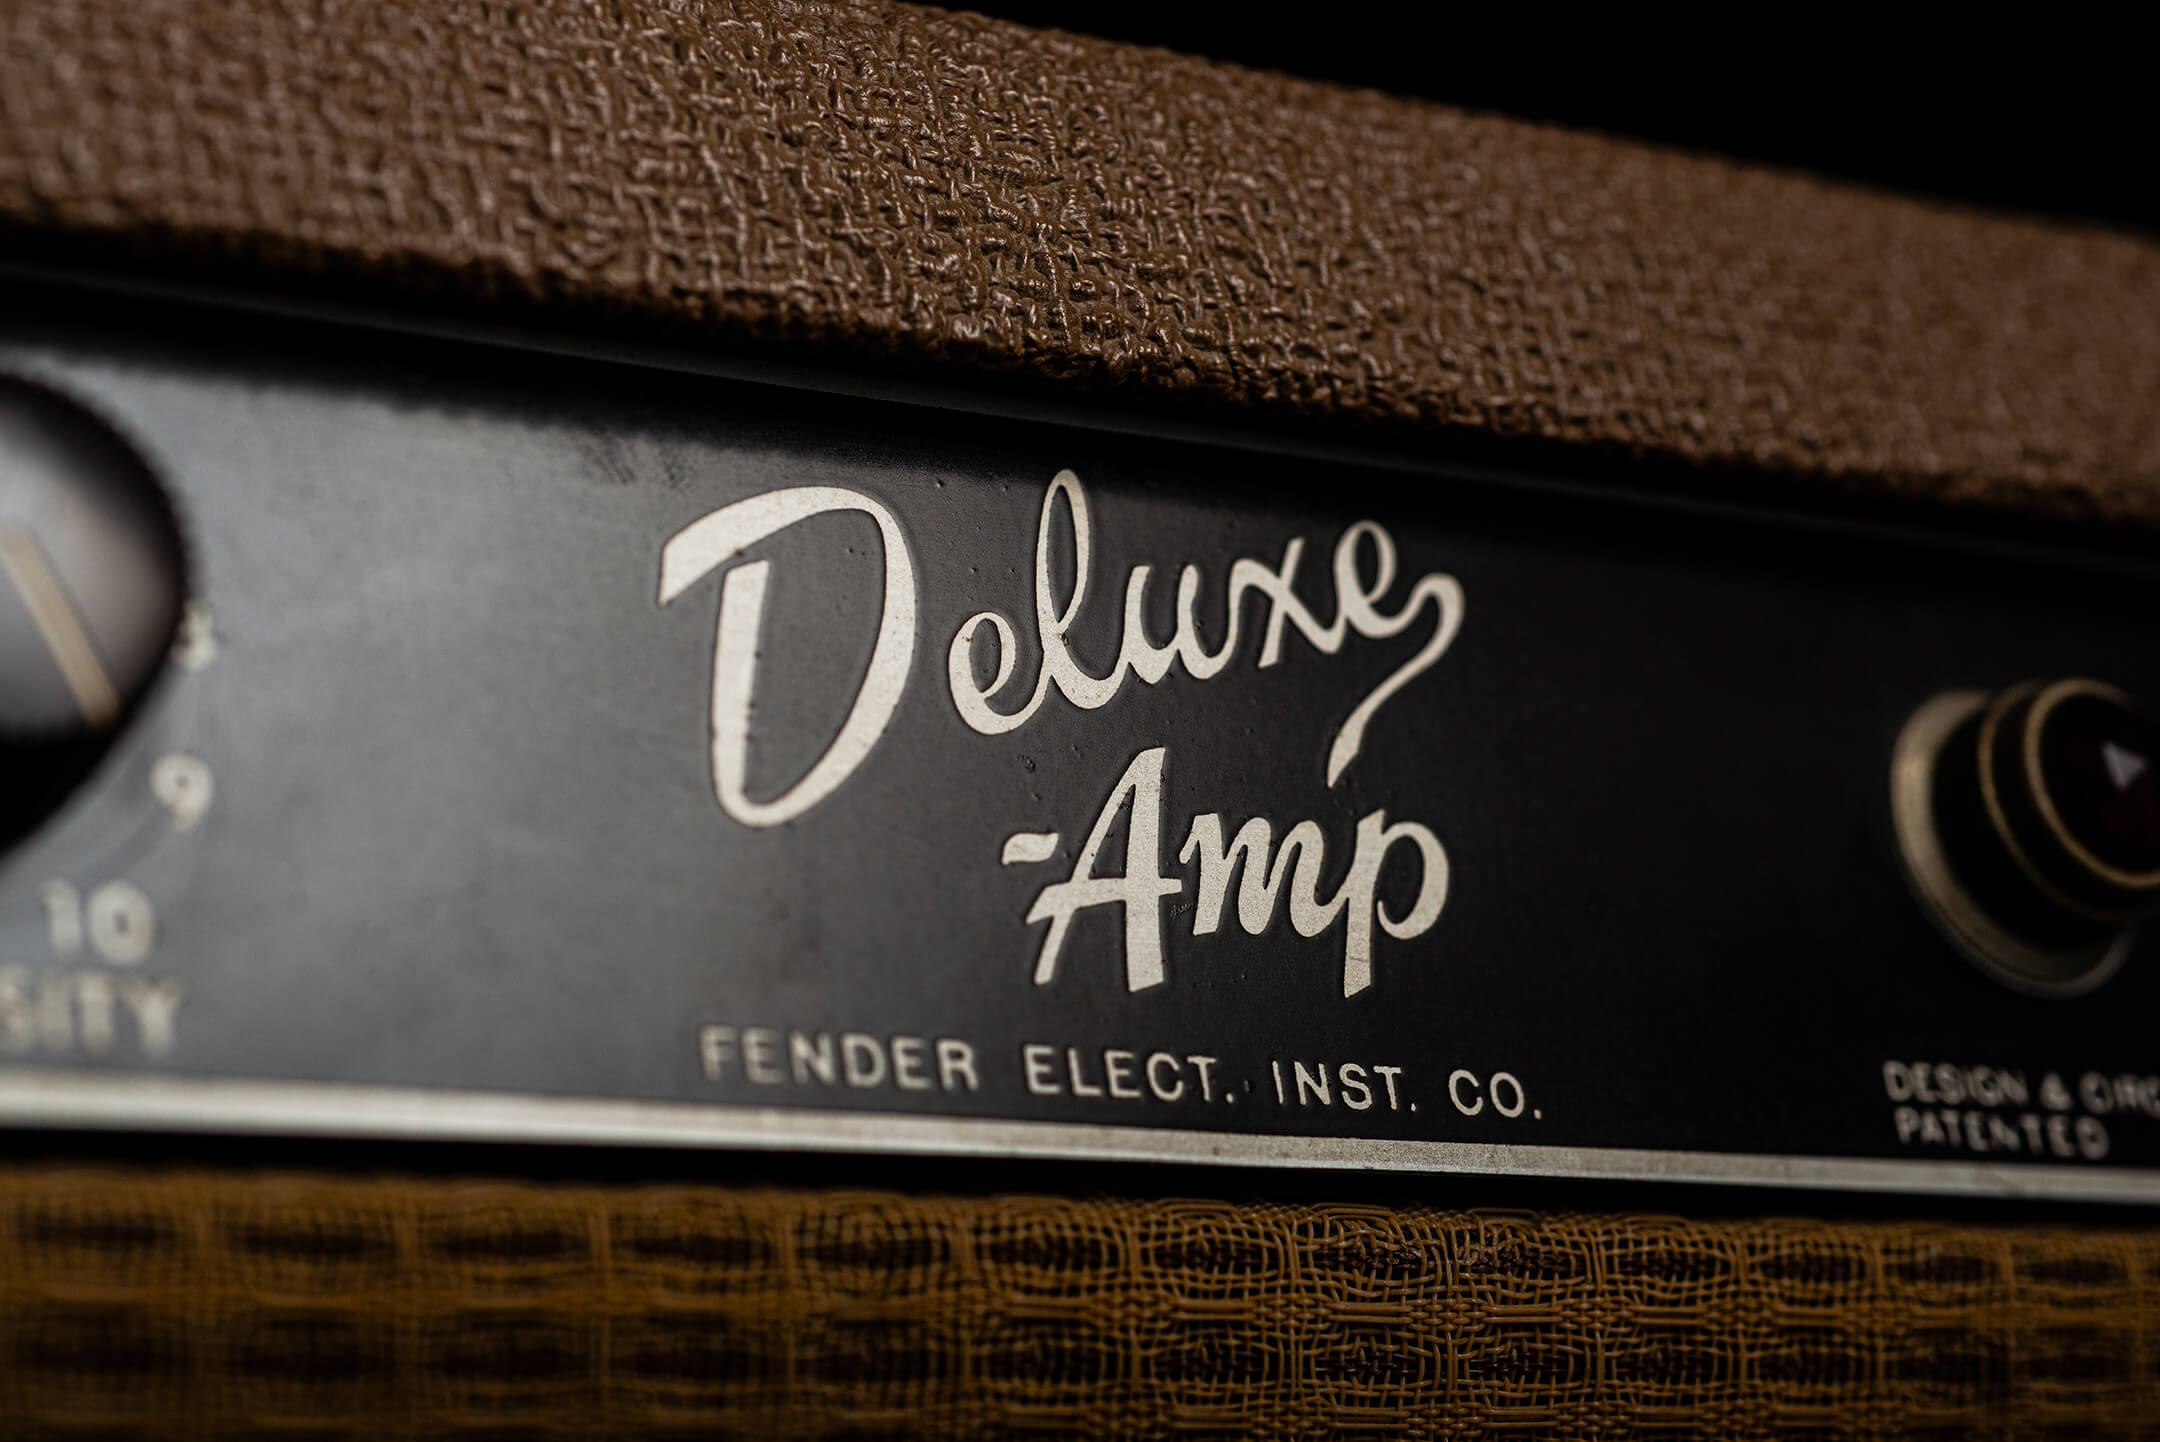 Vintage Bench Text Fender Deluxe Amplifier Shootout